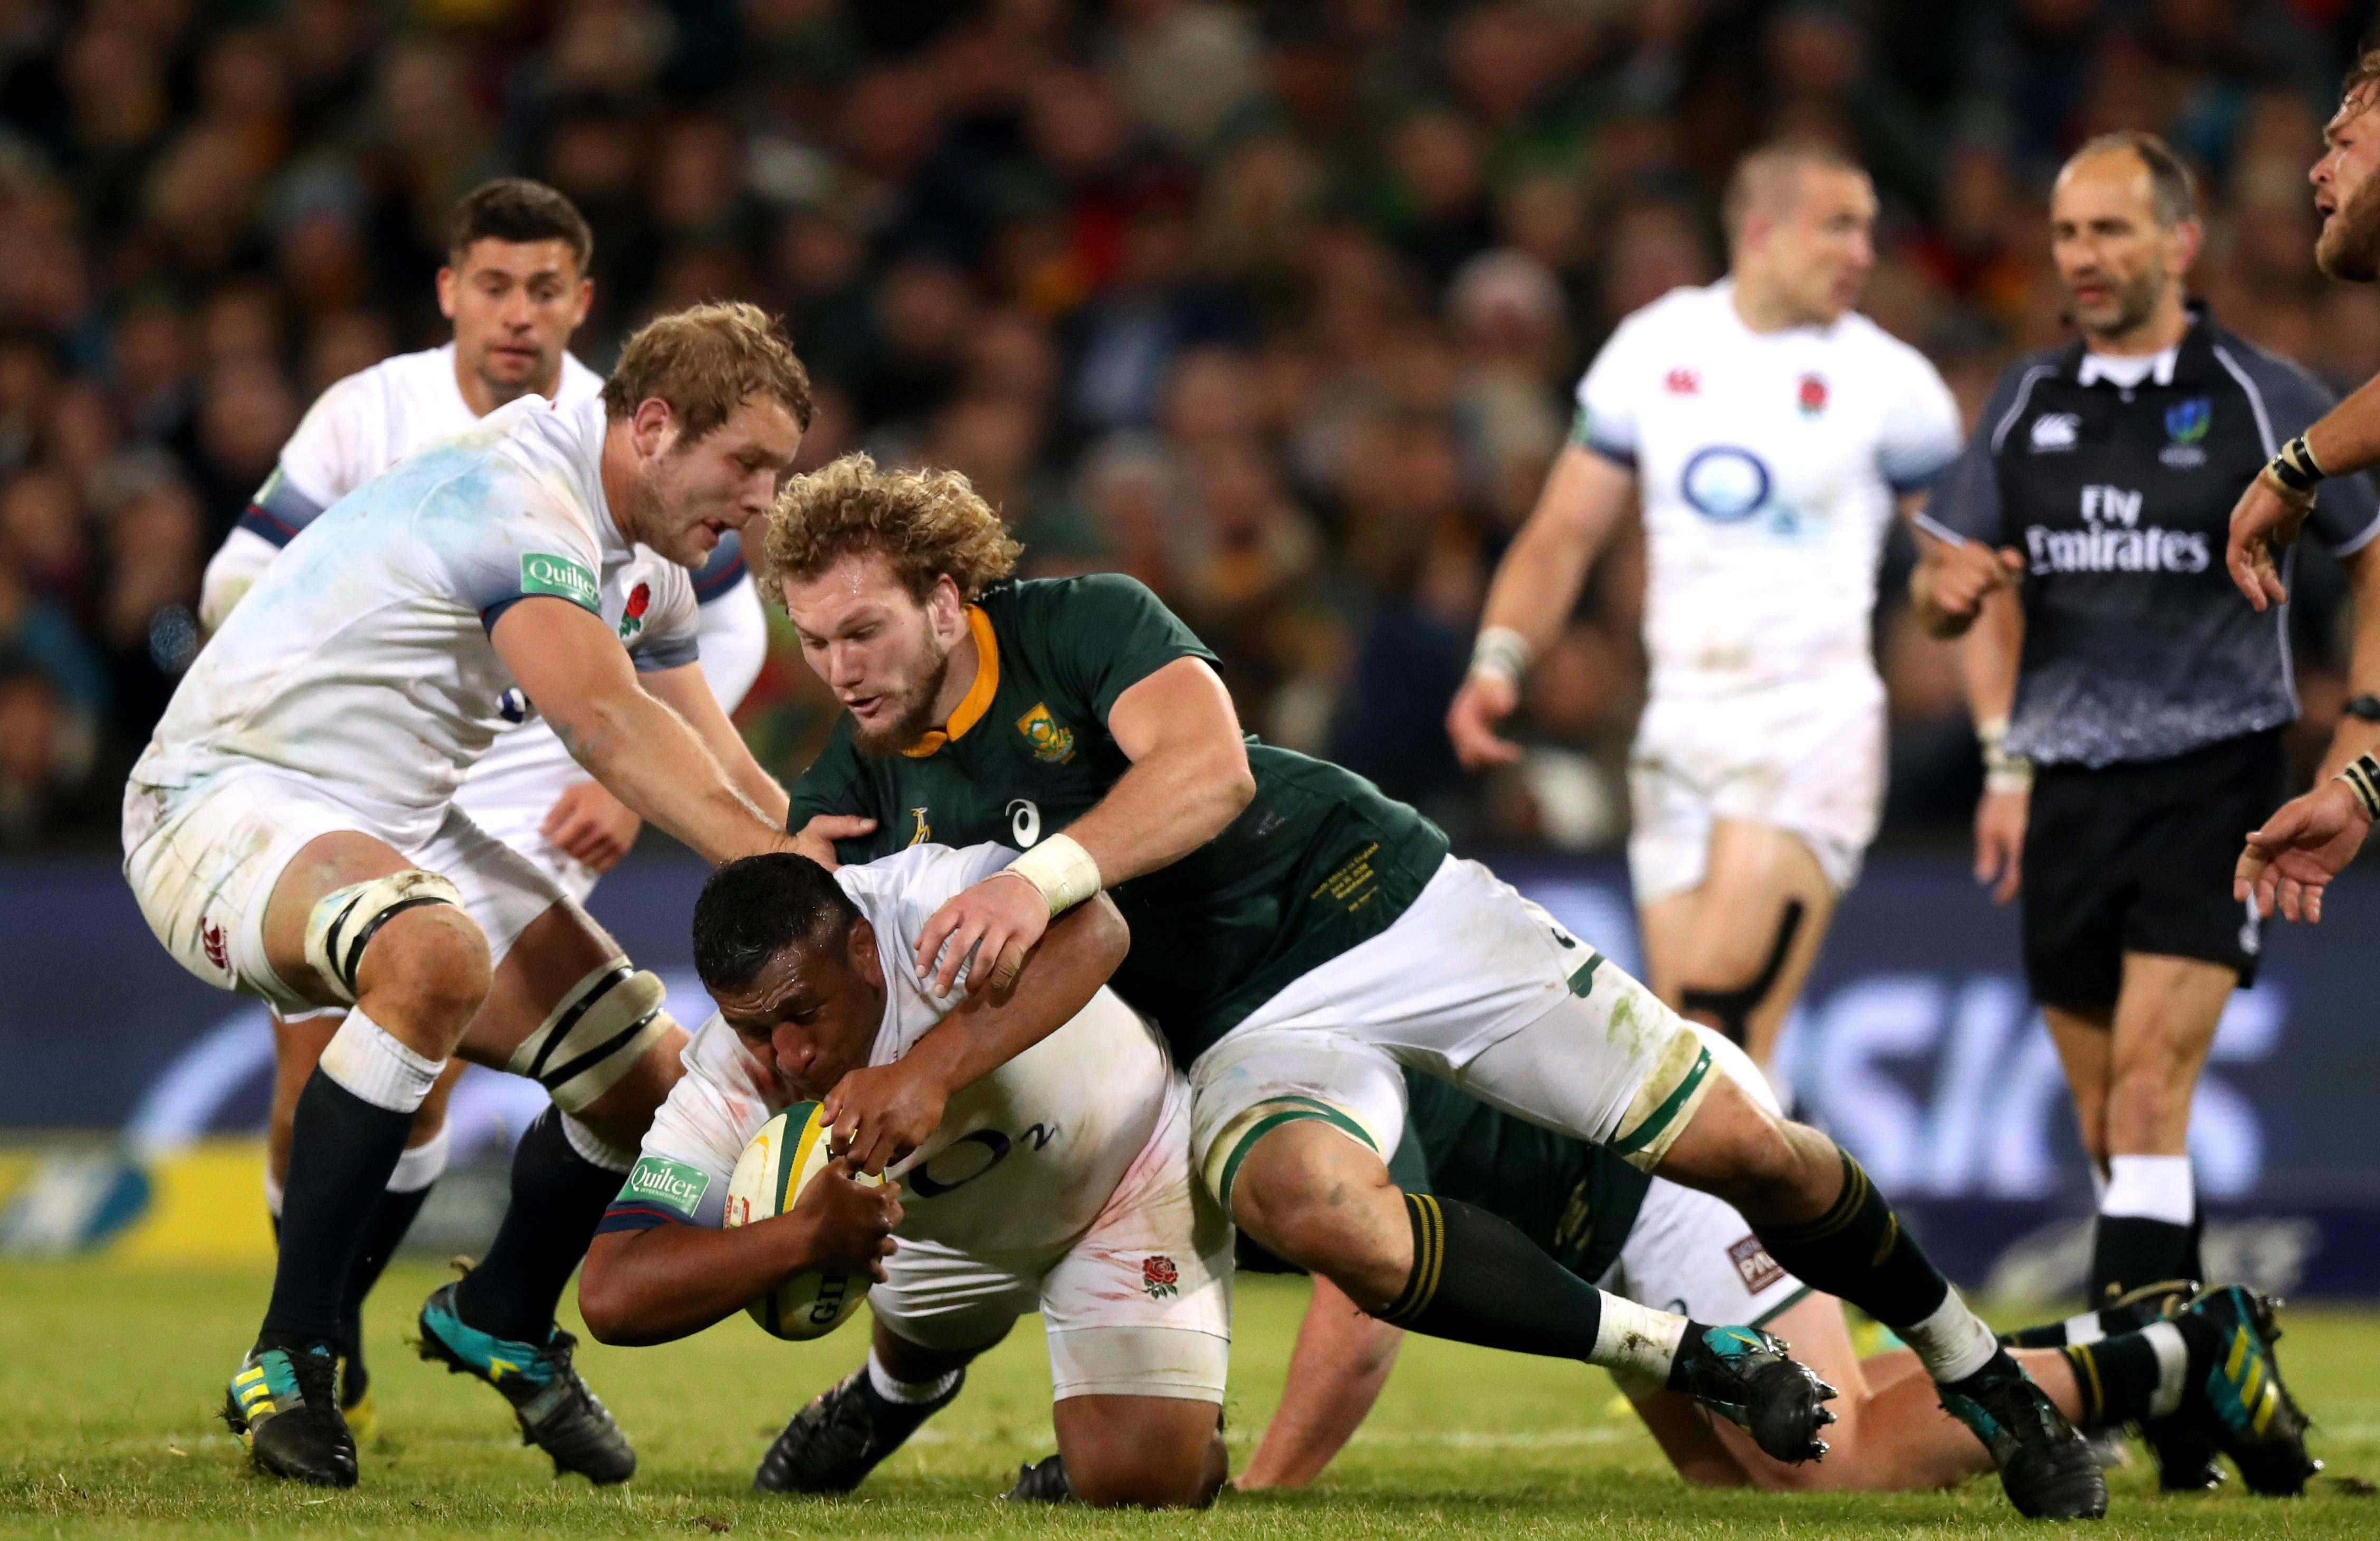 England will need to pull their socks off to break their South African curse